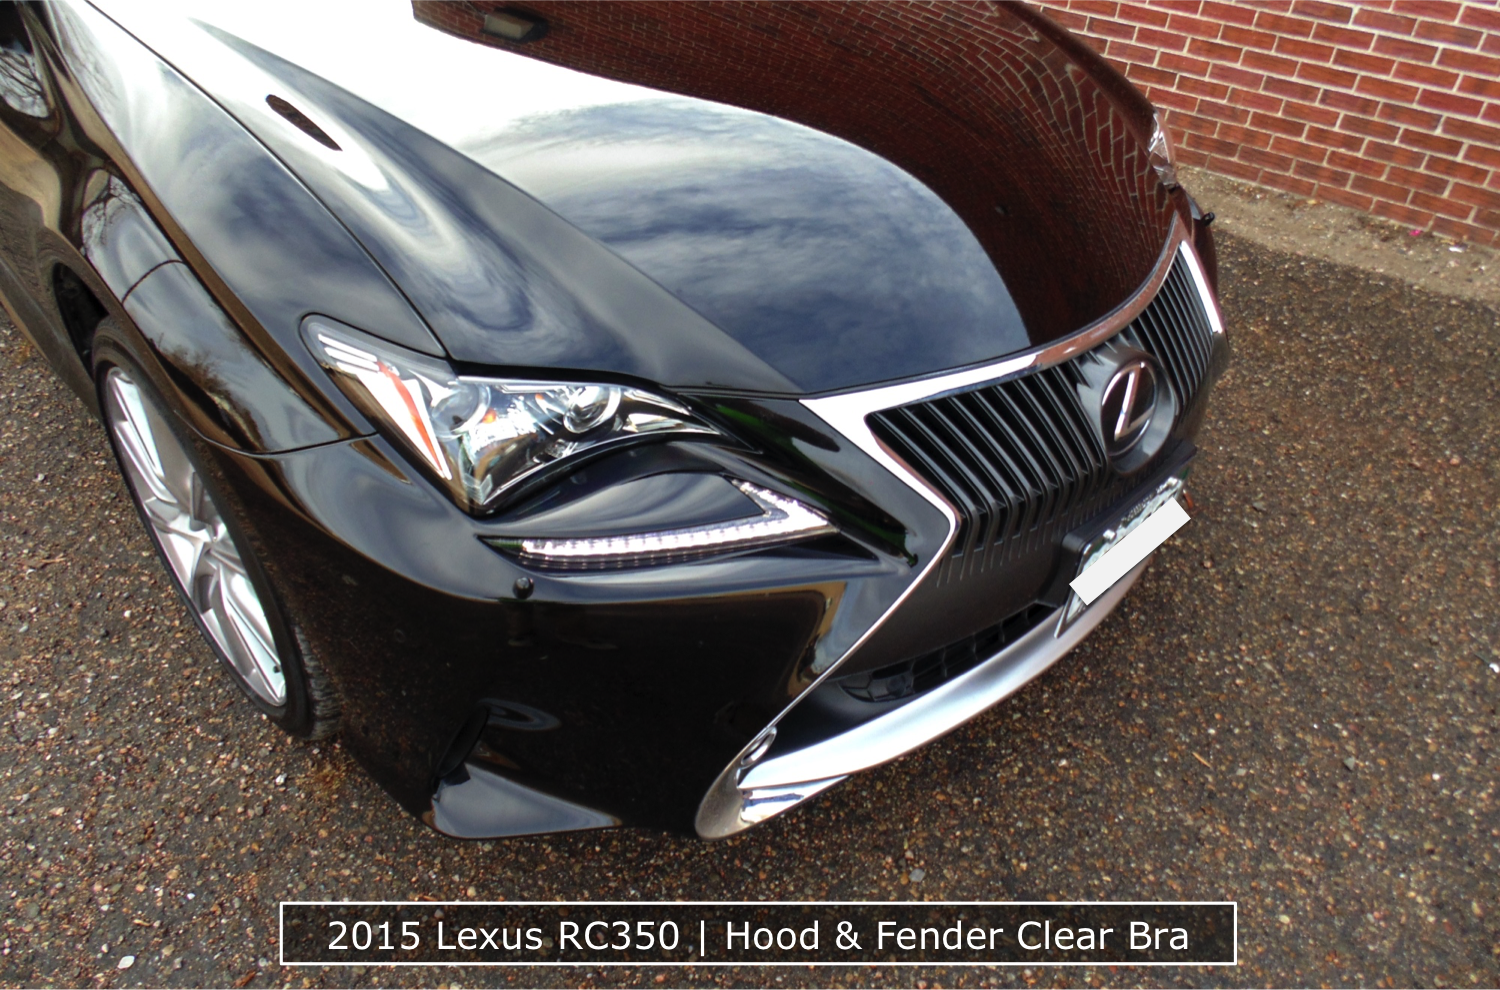 Lexus RSC350 Denver Clear Bra